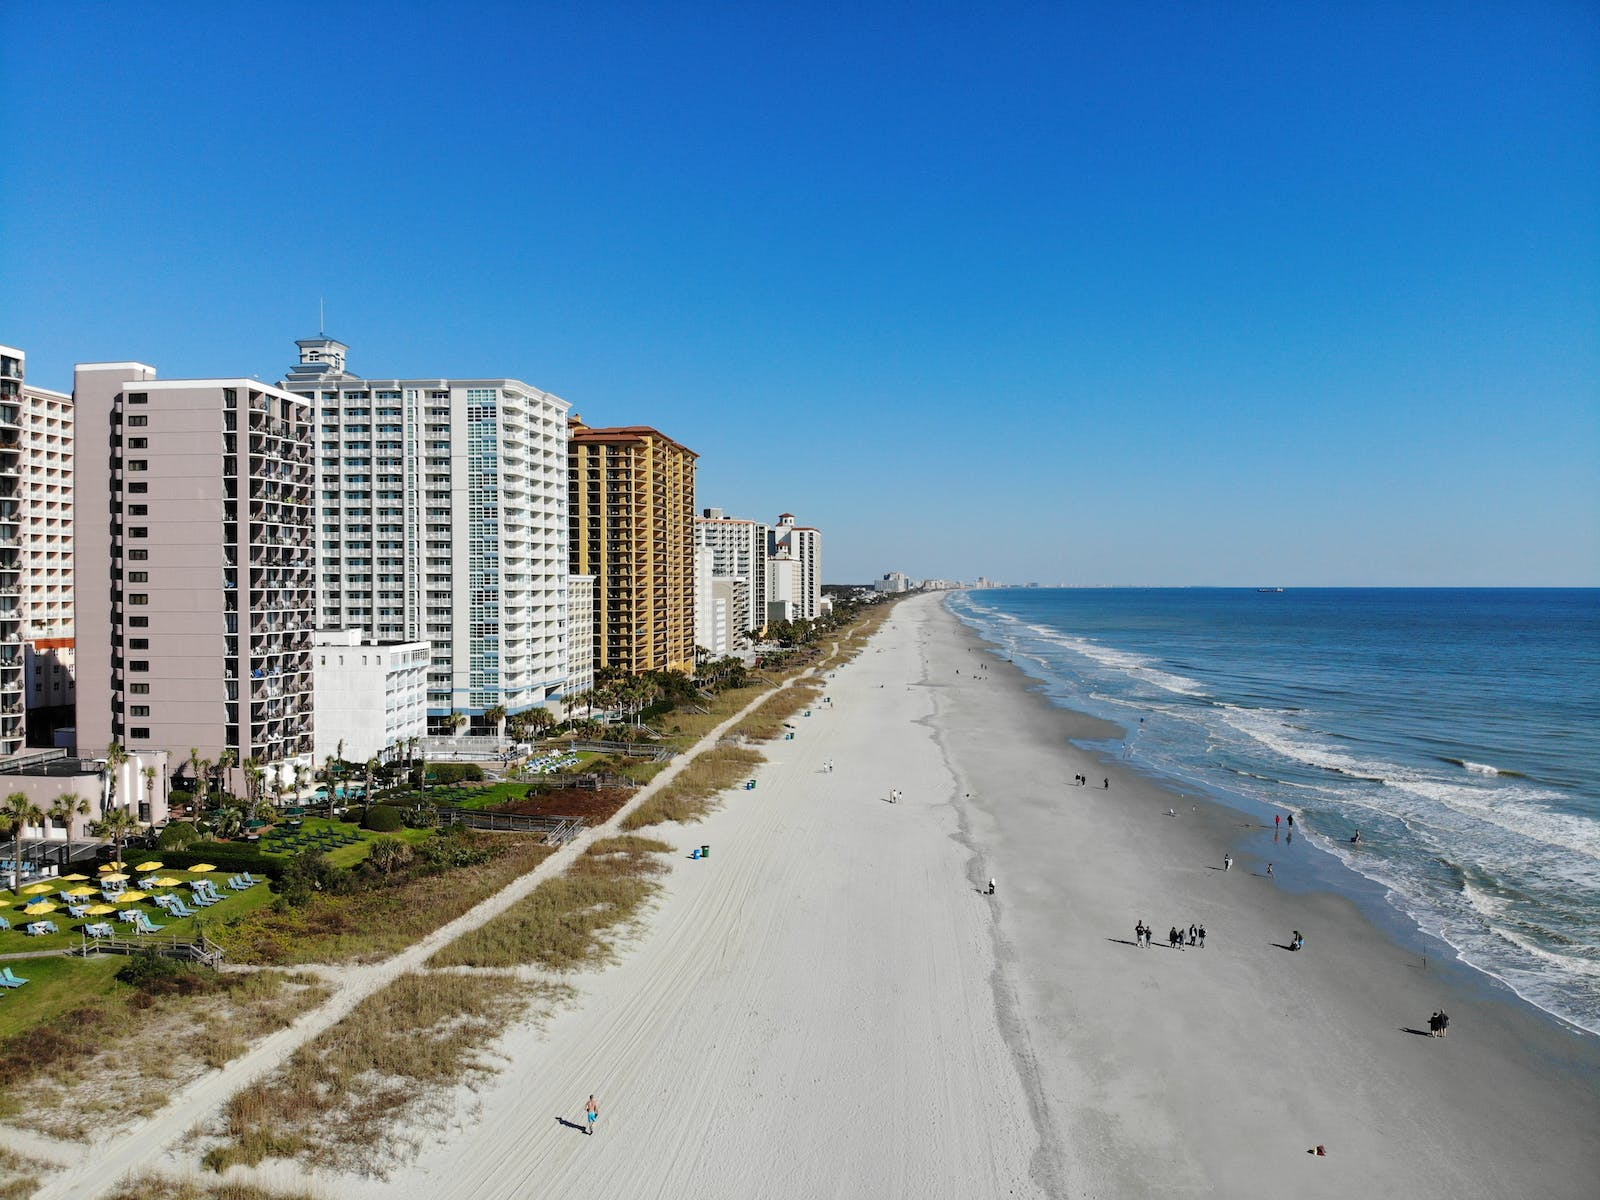 View of several oceanfront beach resorts in Myrtle Beach, SC